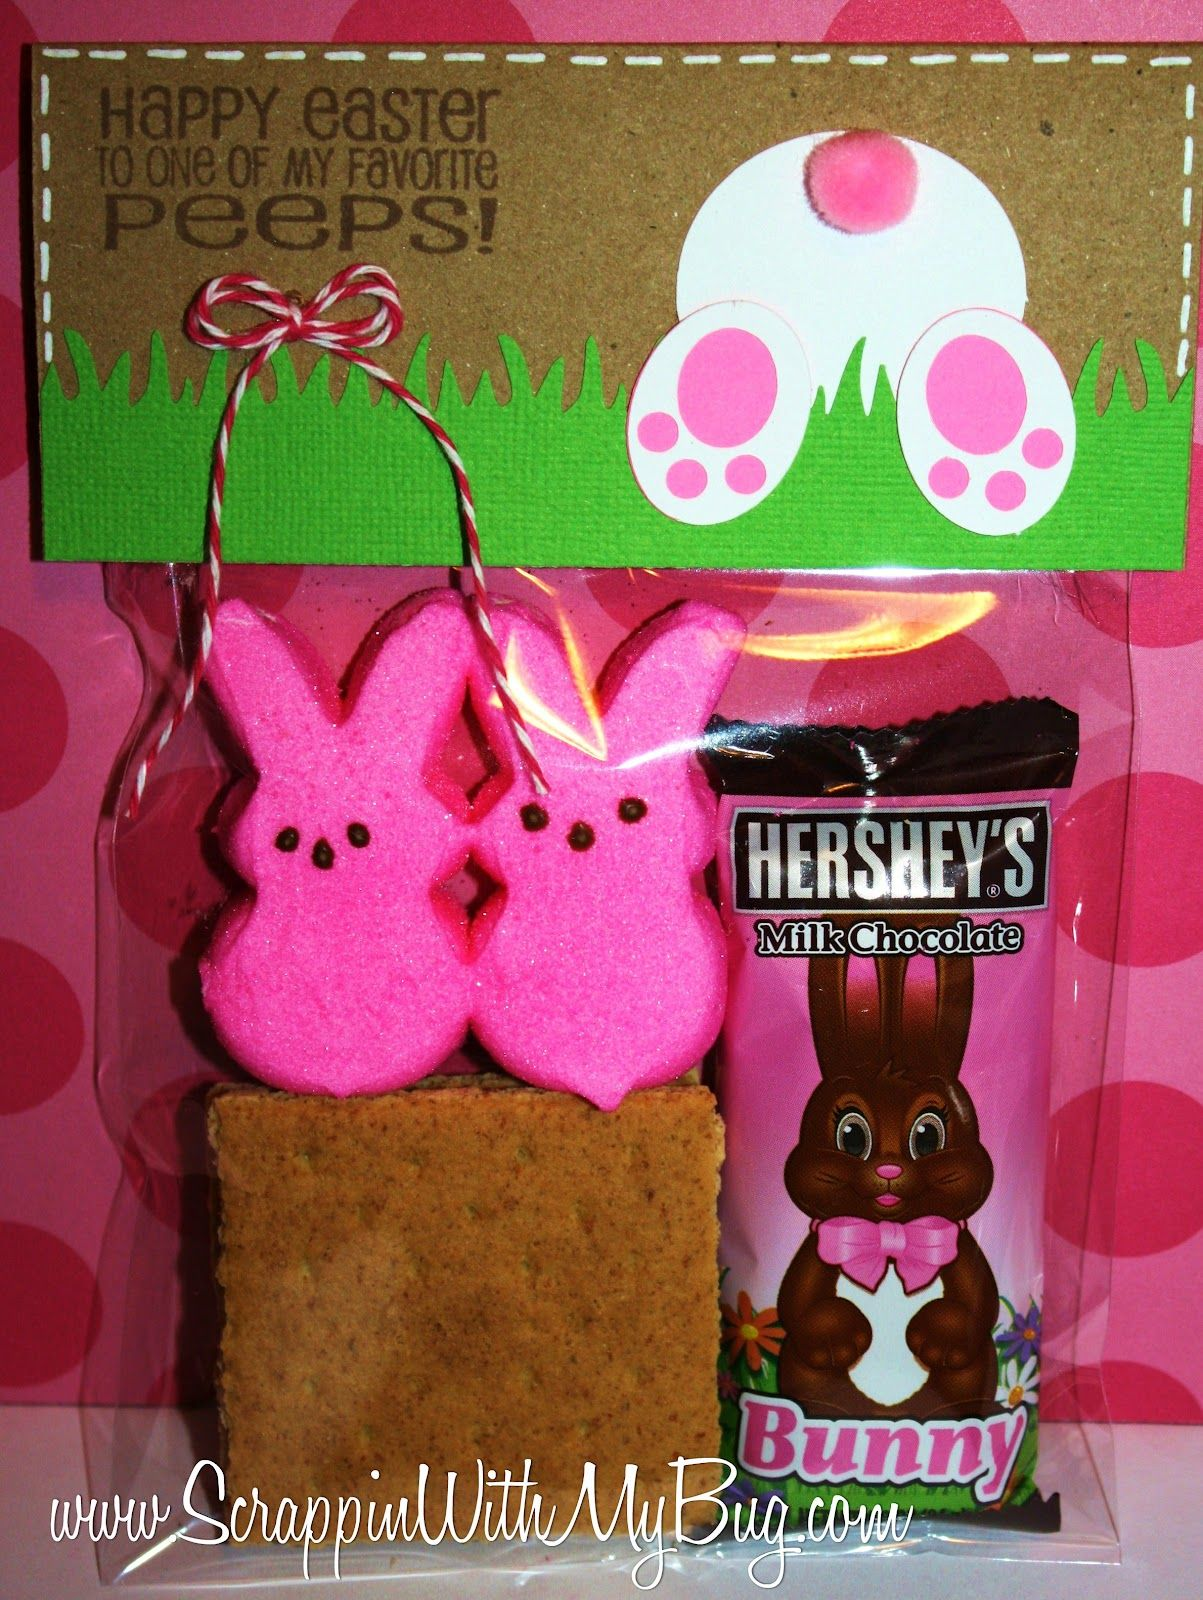 Perhaps the cutest easter craft ever on the planet sherry you use perhaps the cutest easter craft ever on the planet sherry you use your peep diecuts make one sample then sell bag tppers customer0s would fill the negle Choice Image